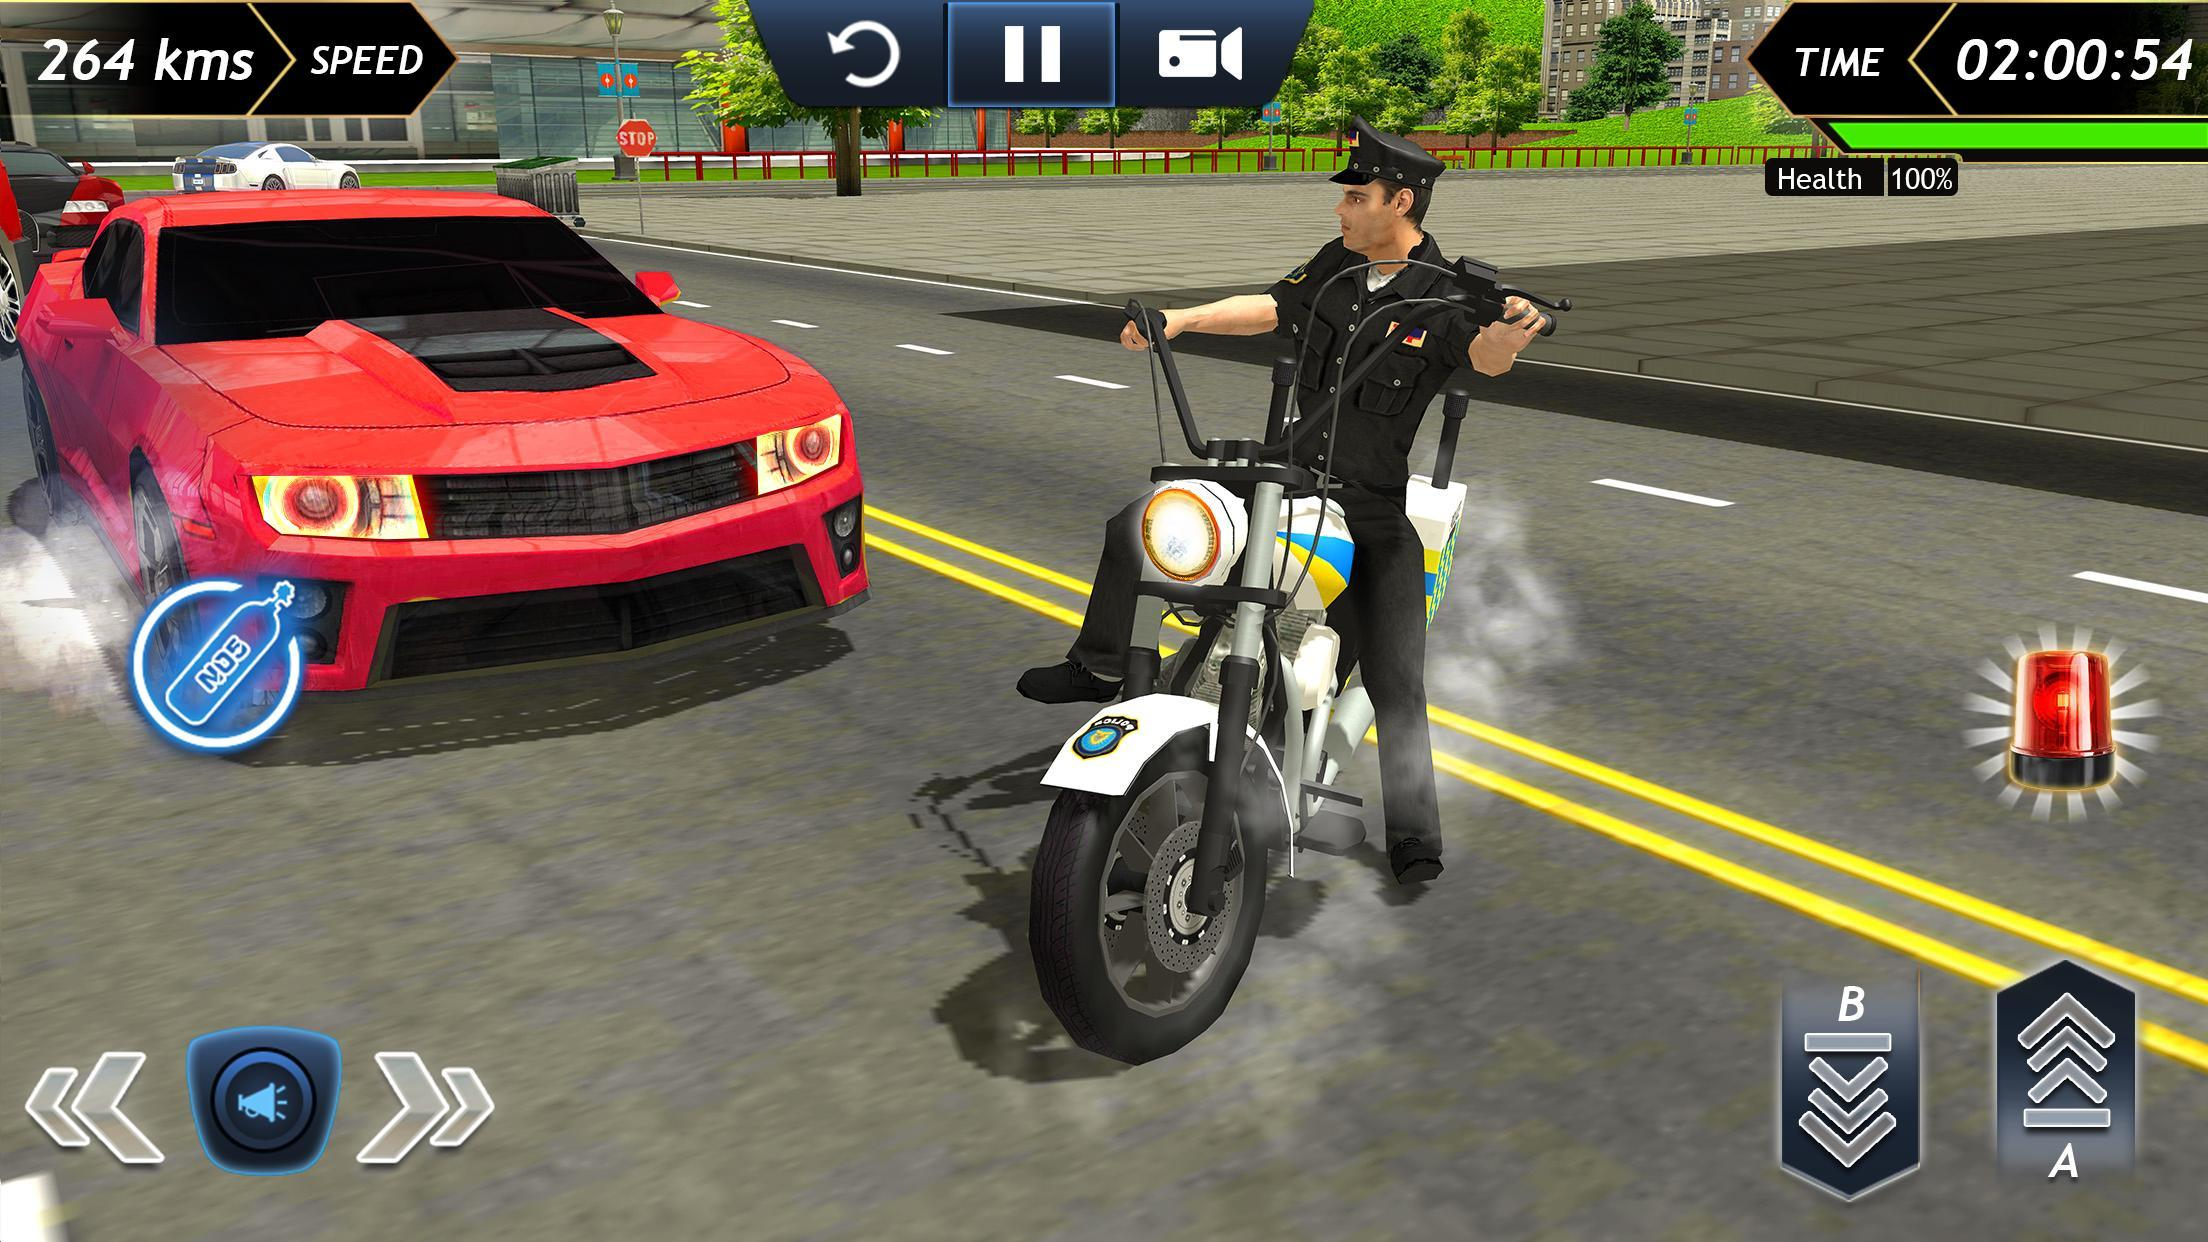 Police Bike Racing Free For Android Apk Download